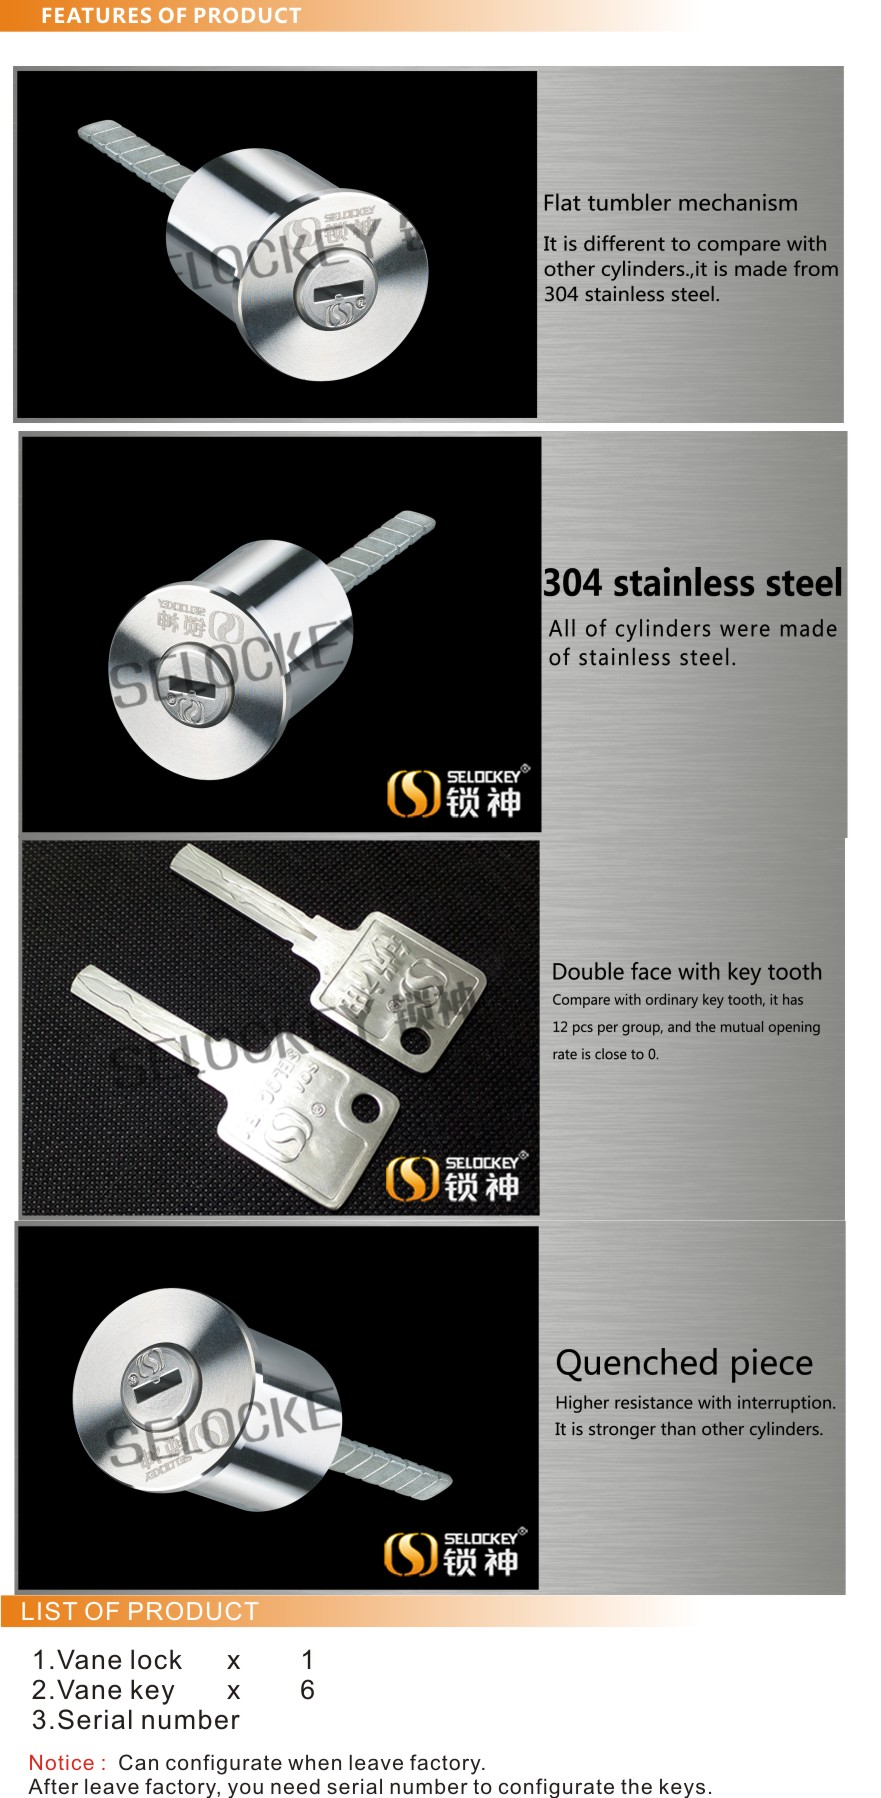 Cylinder of 304 stainless steel with flat tumbler mechanism with adjustable cross key cylinder lock for great race(YP-30)